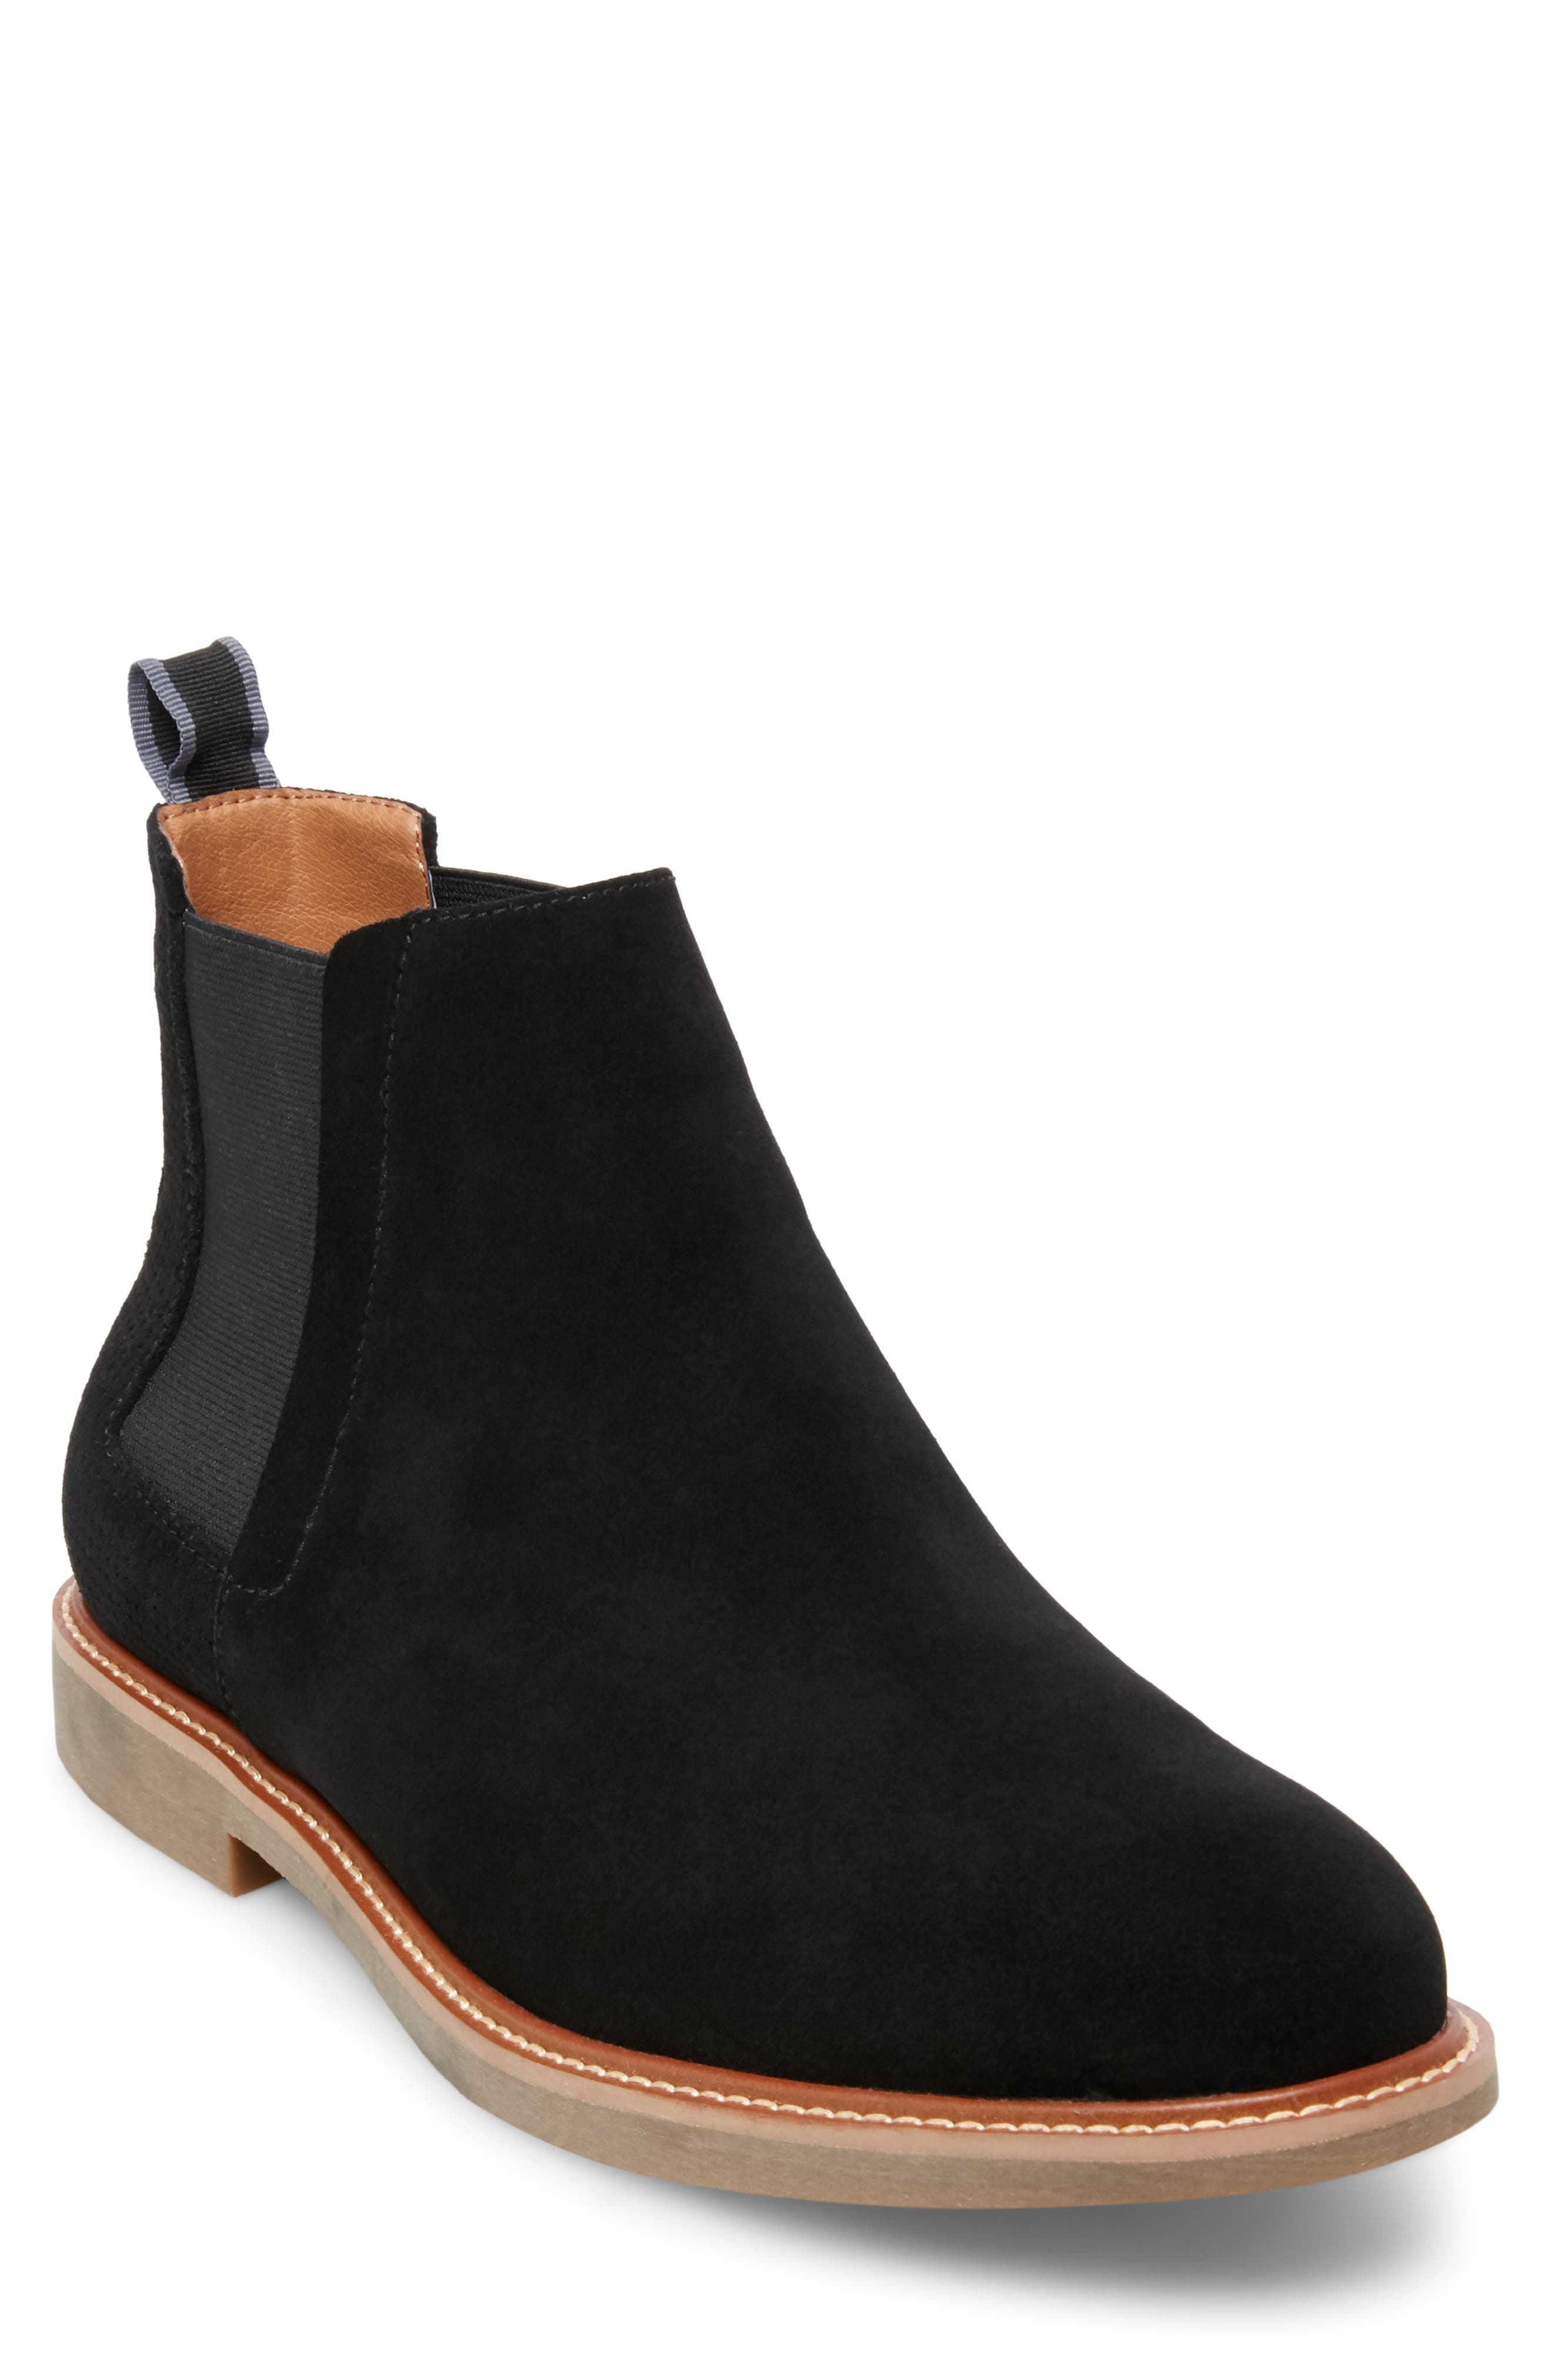 STEVE MADDEN, Highlyte Textured Chelsea Boot, Main thumbnail 1, color, BLACK SUEDE